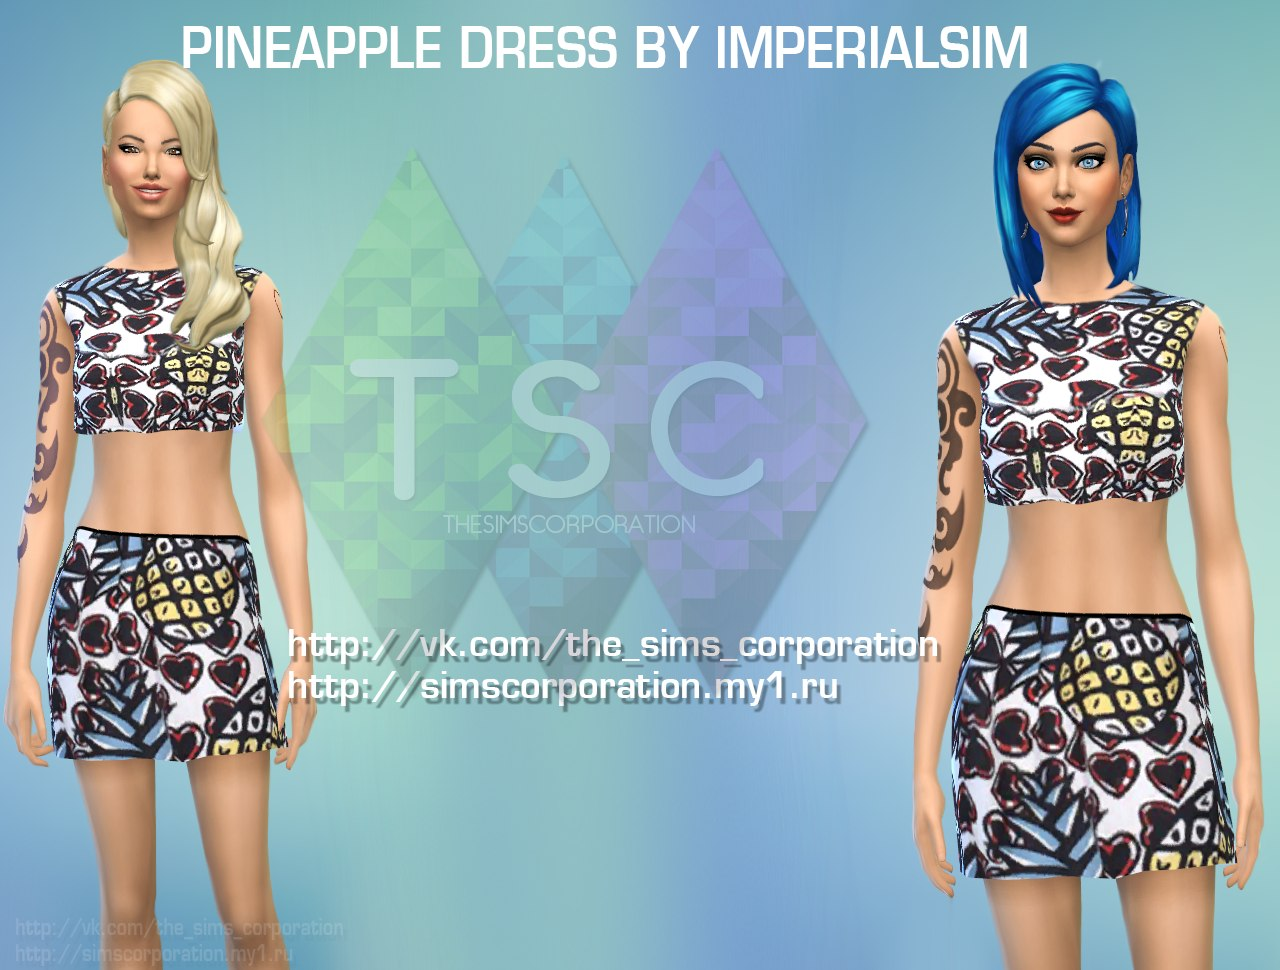 Pineapple dress by IMPERIALSIM